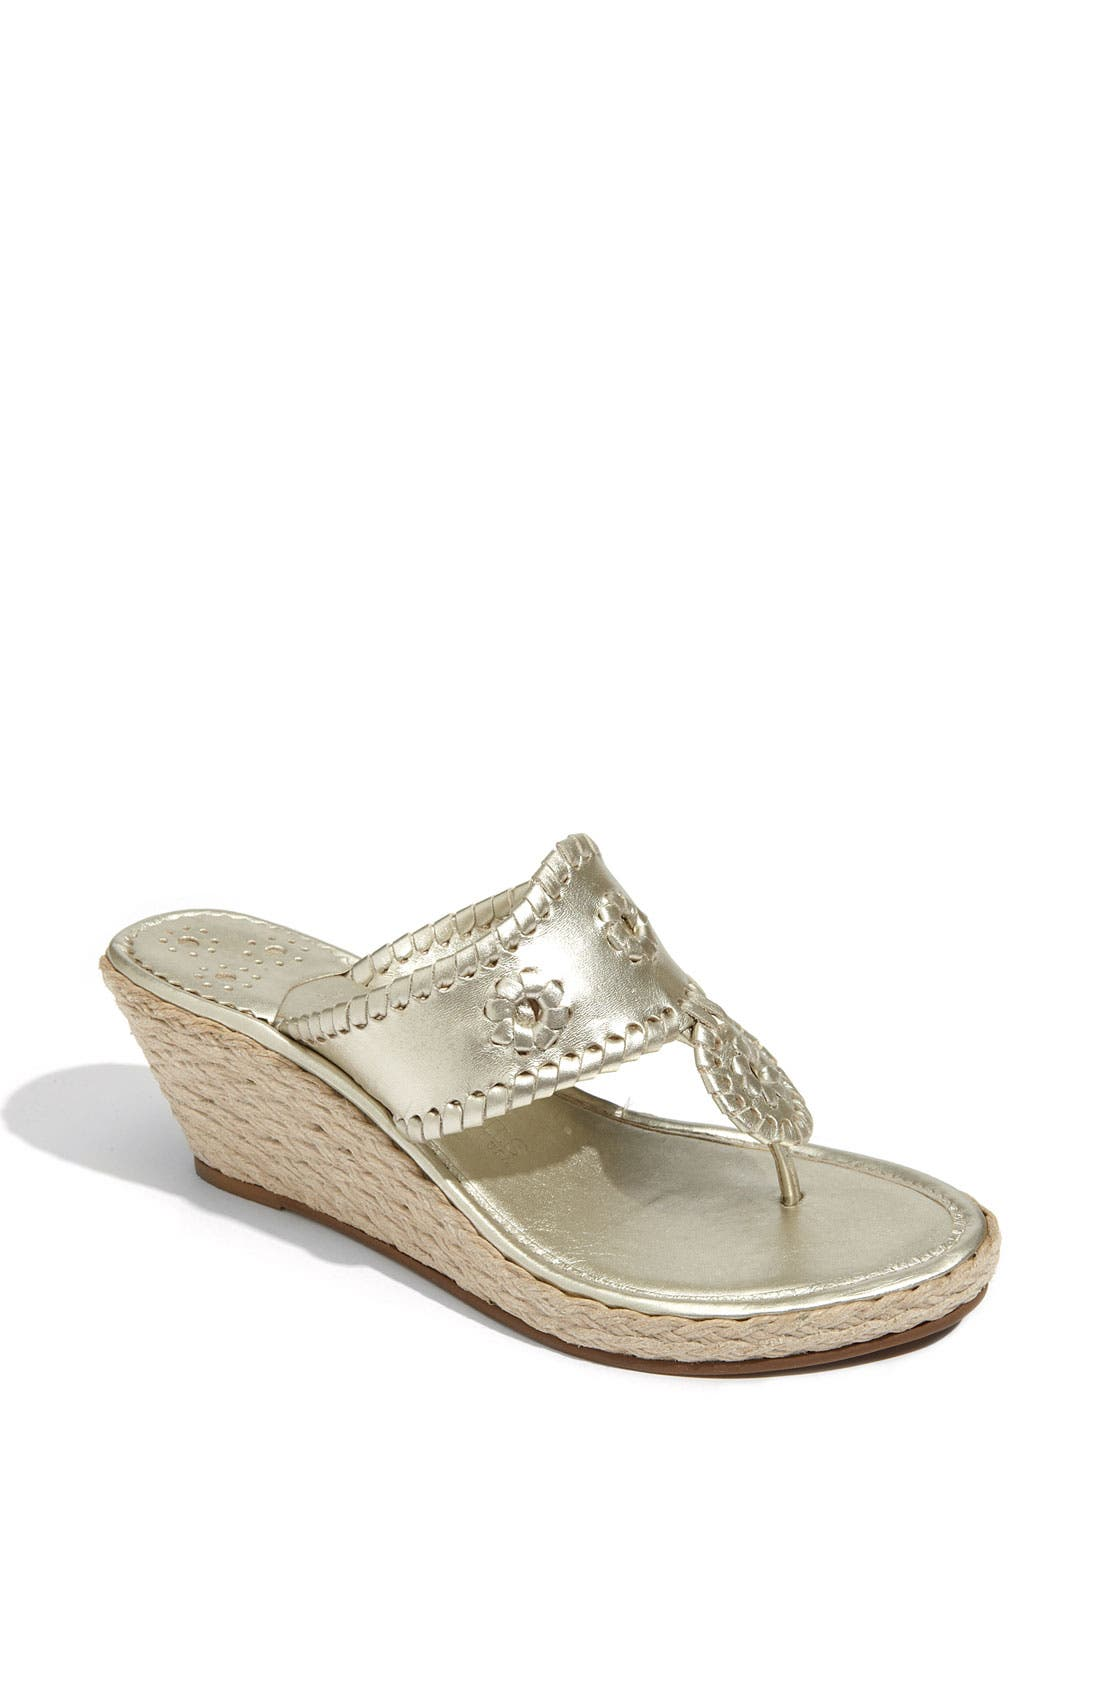 'Marbella' Rope Wedge Sandal, Main, color, 042